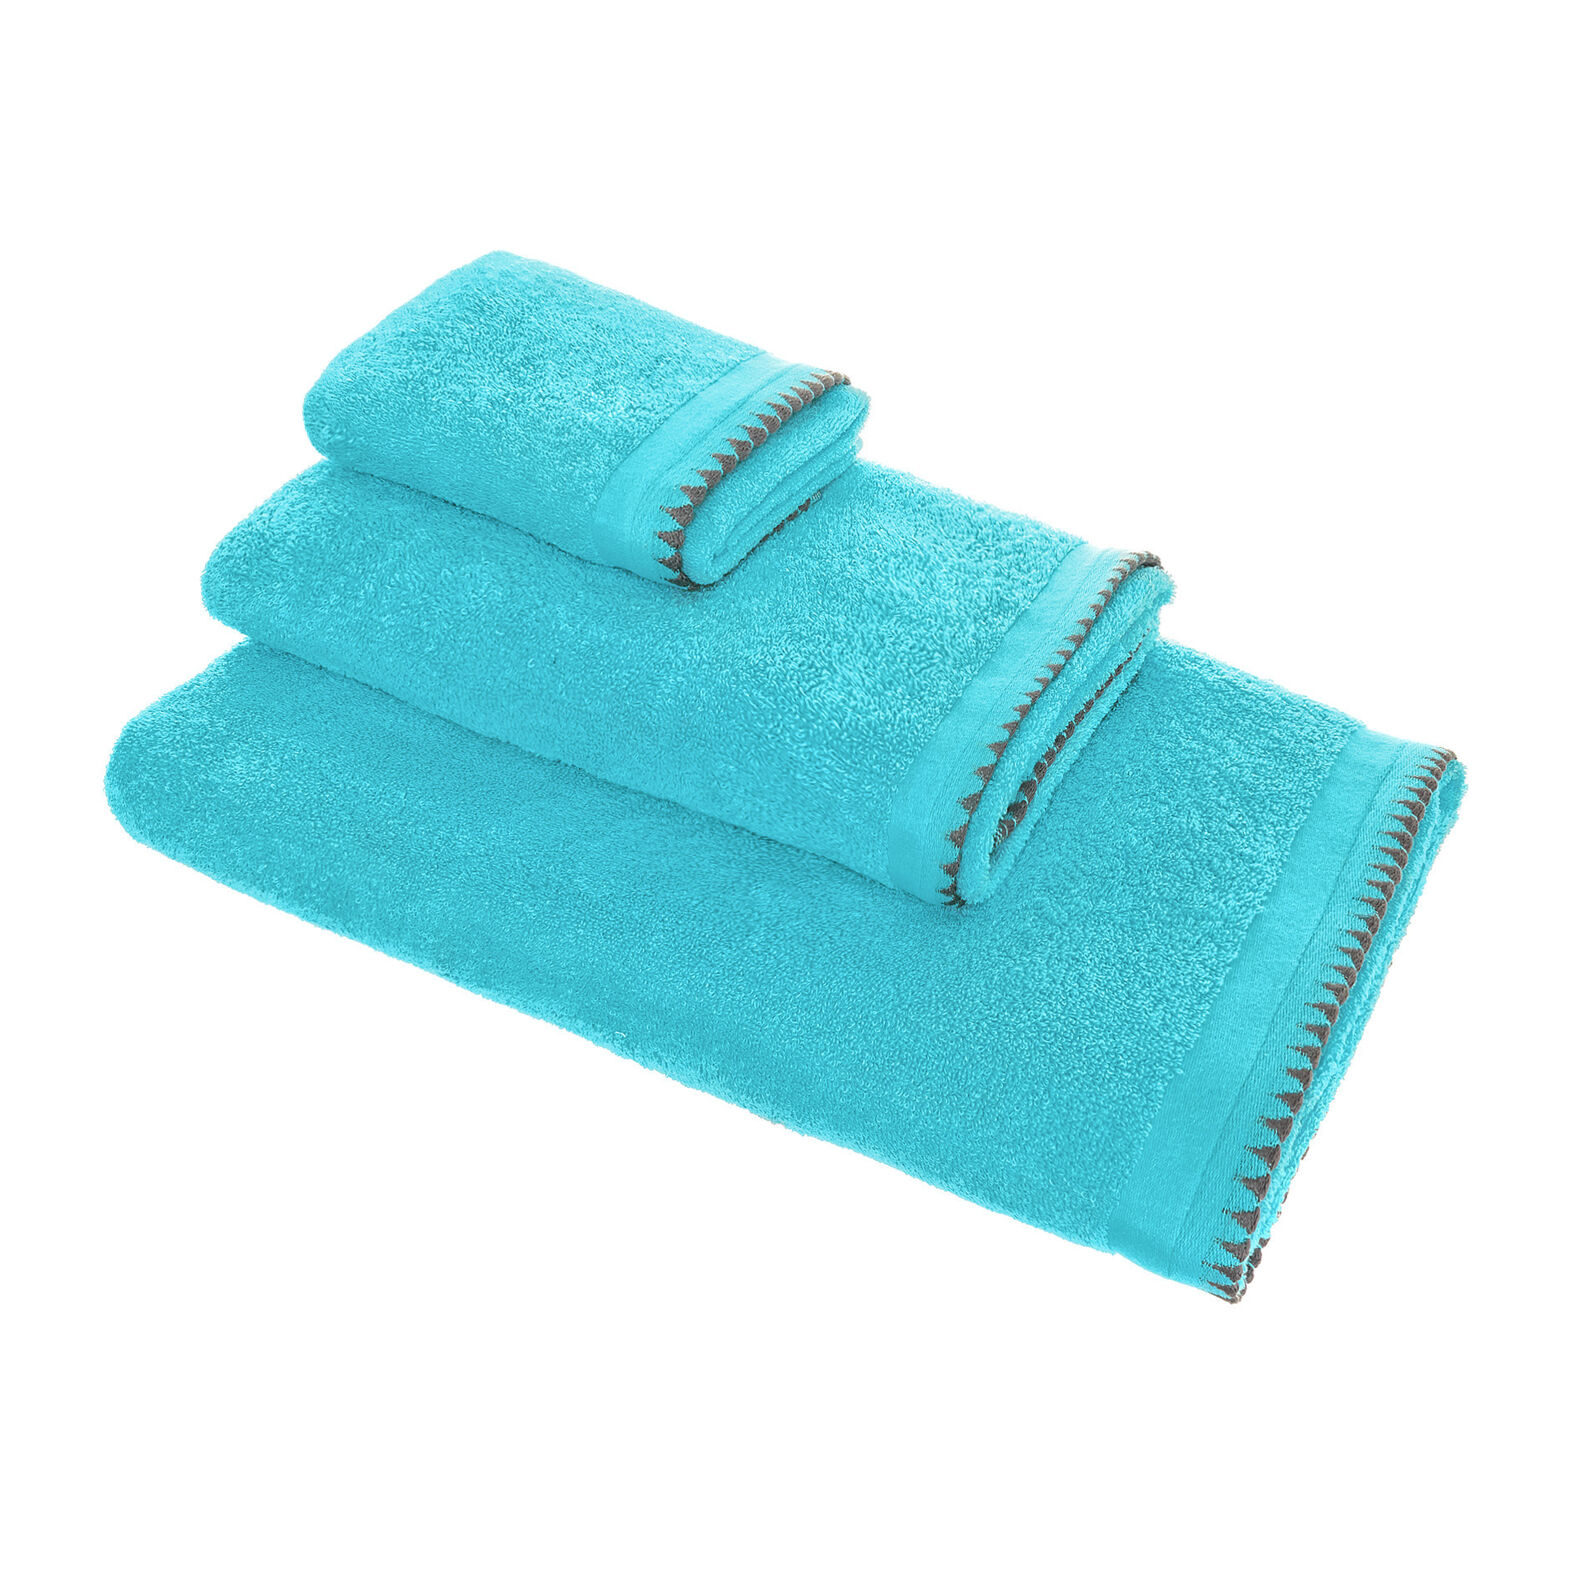 100% cotton towel with detailed edging